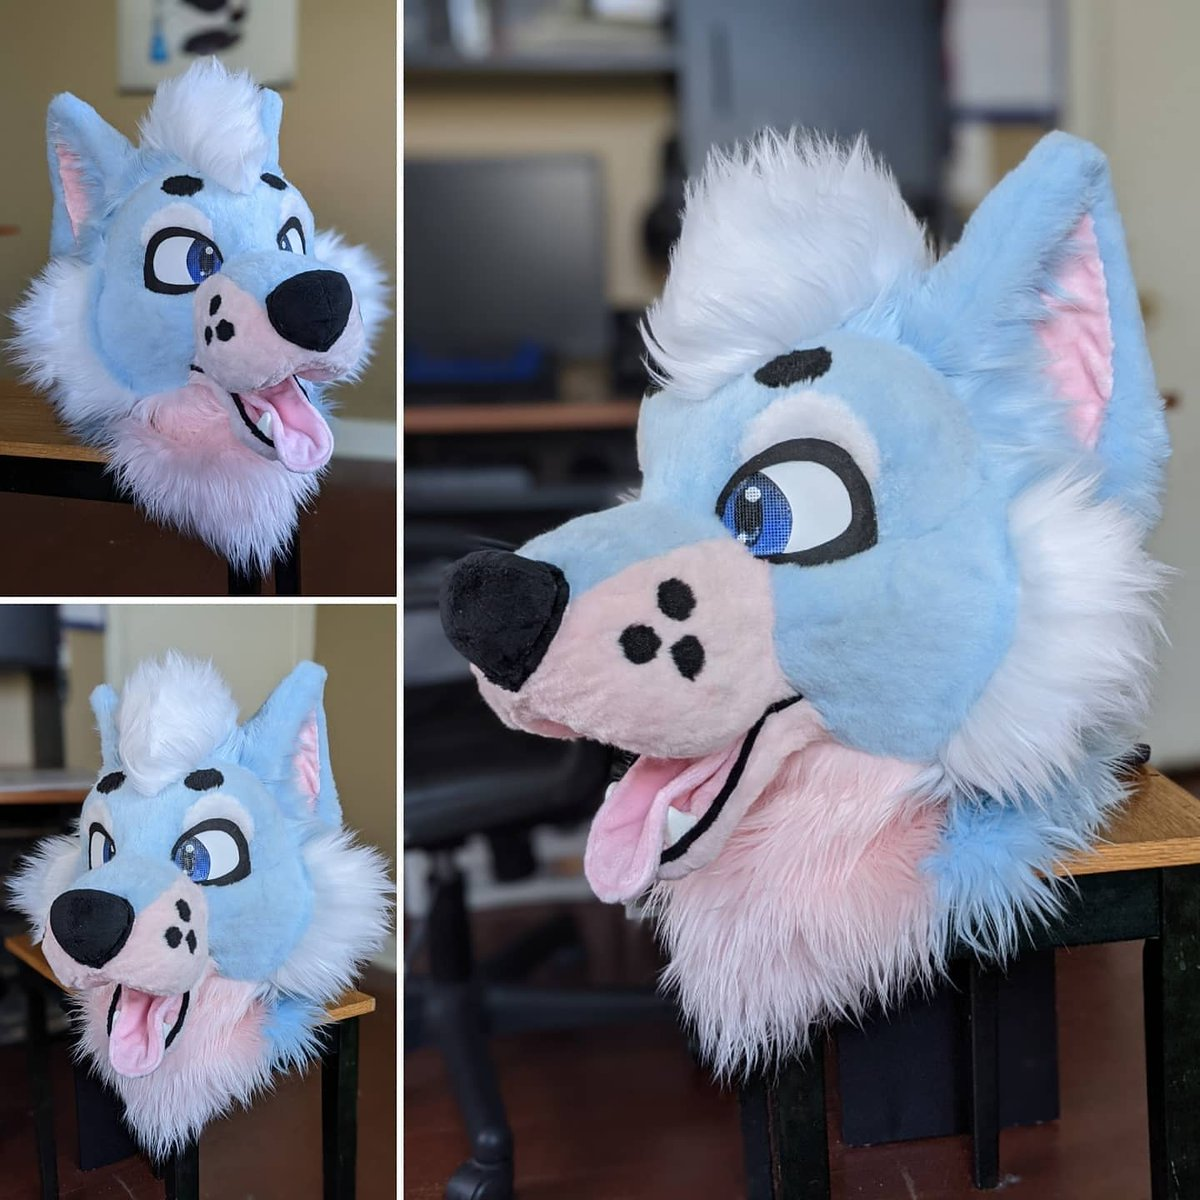 This cutie is officially for sale! Details can be found on my IG!  #fursuitsforsale #fursuitforsale #furryfandom #fursuits #fursuit #furries #fursuiting #fursuitmaker